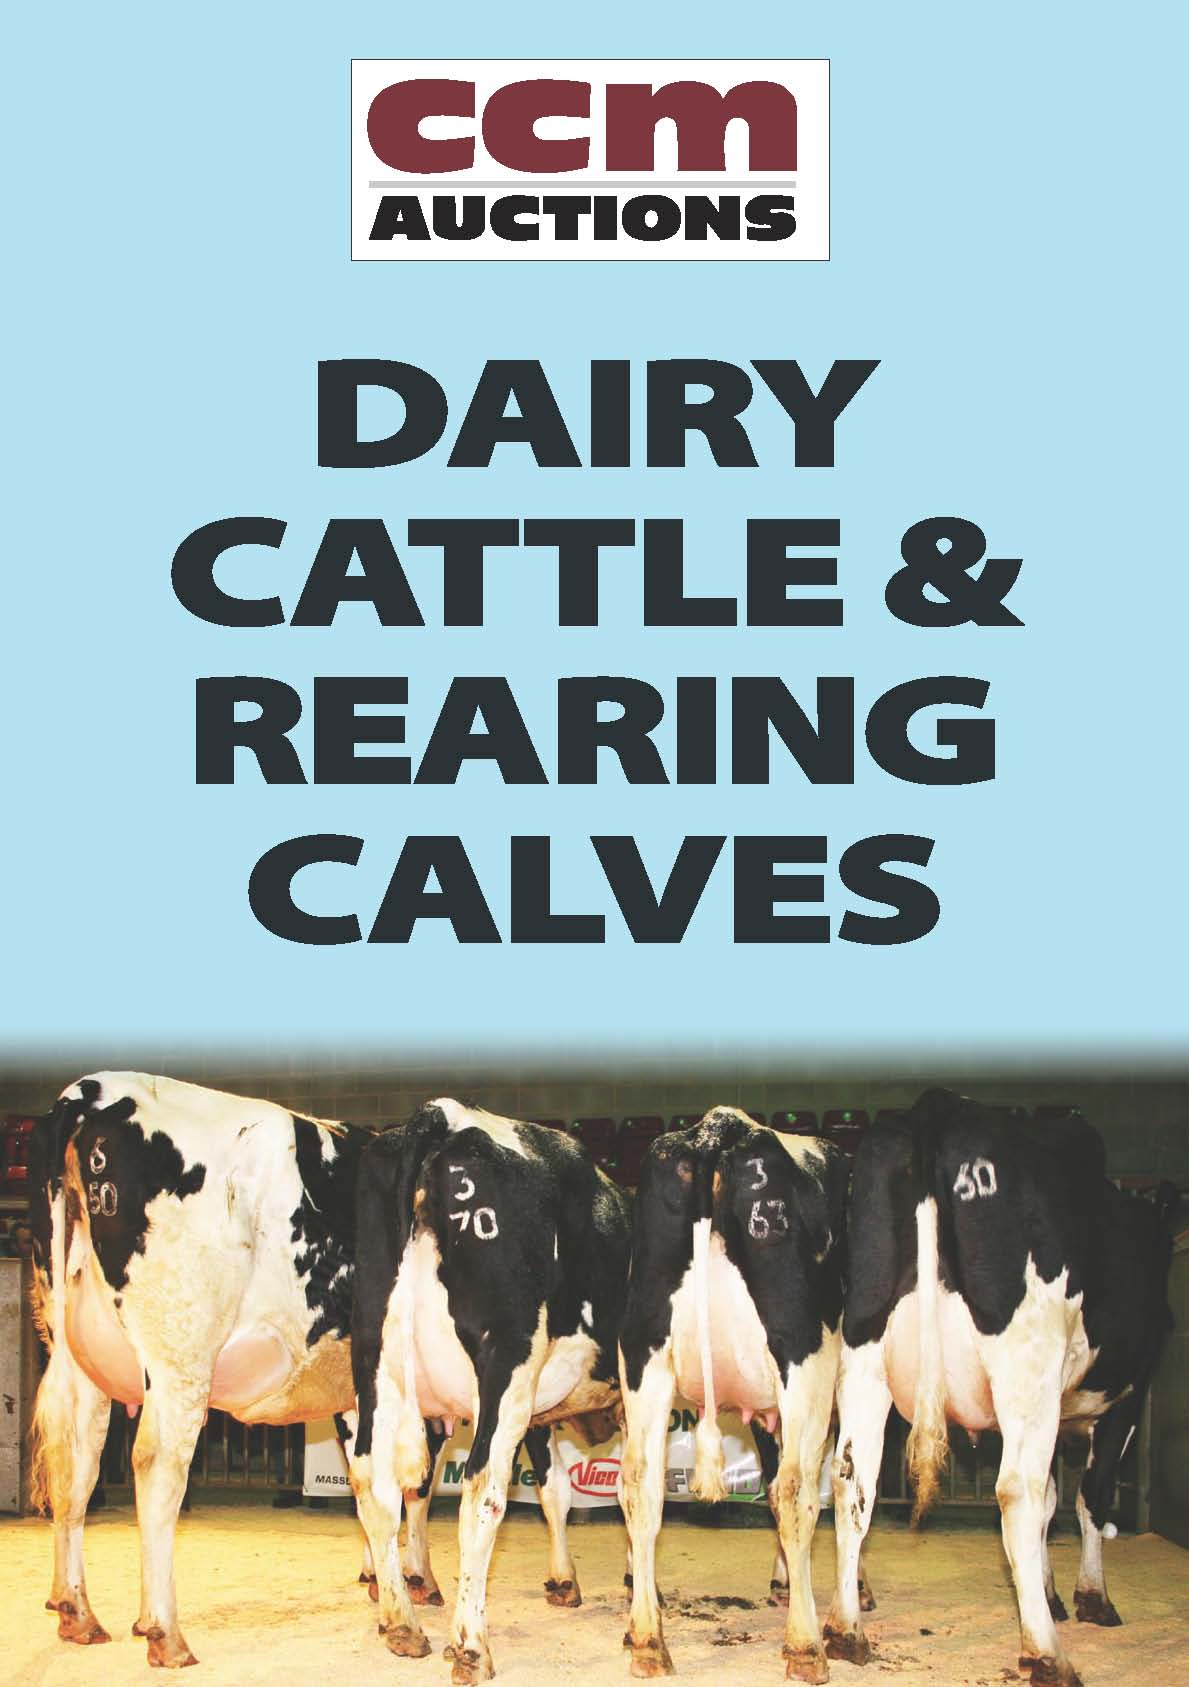 CALF SHOW PRESS - MONDAY 17TH AUGUST 2015